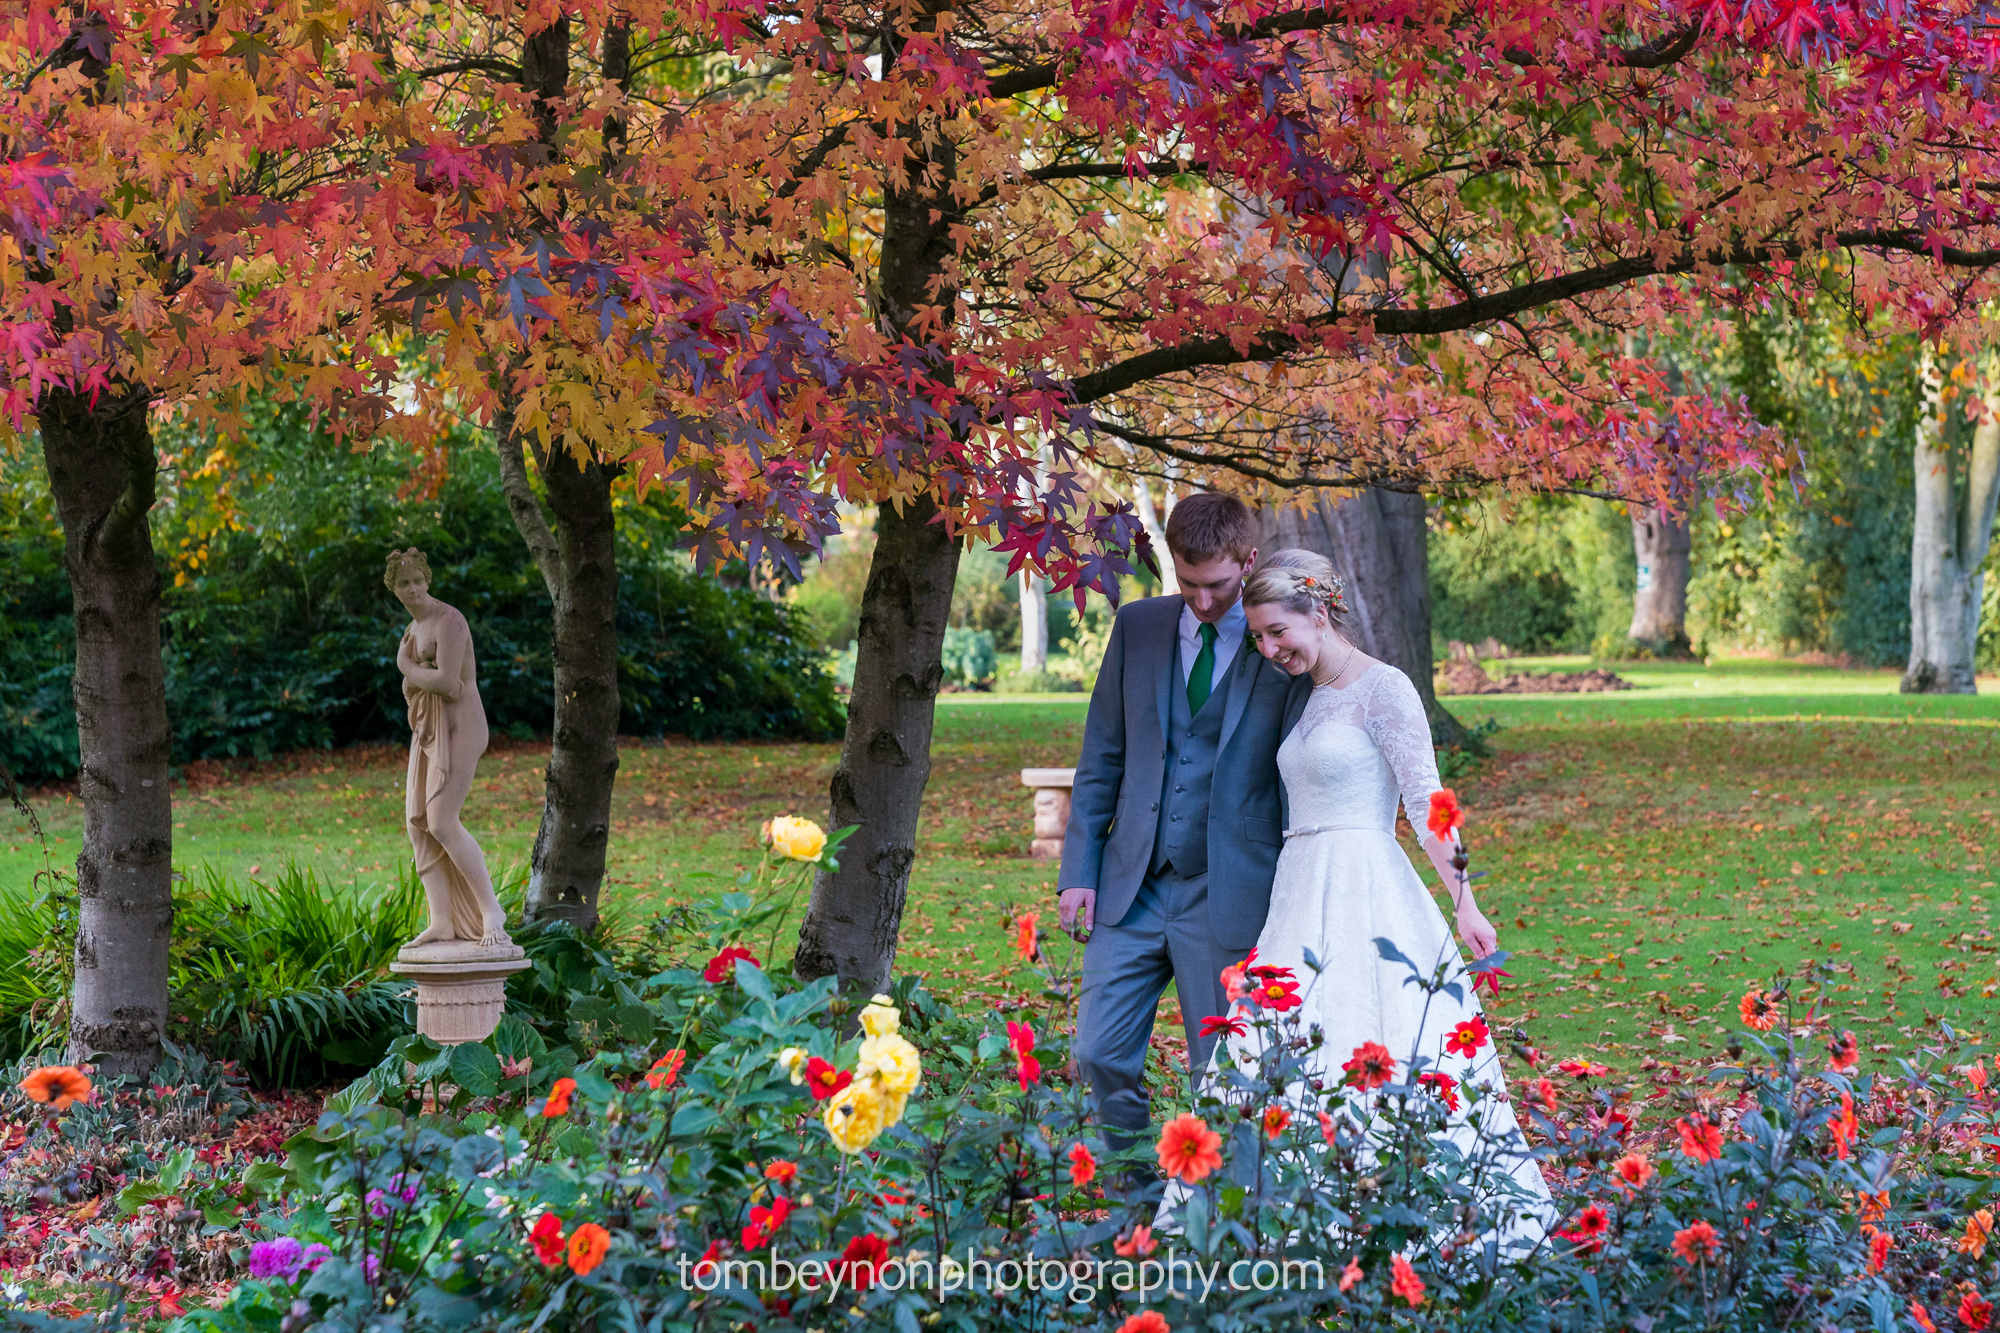 Wonderful autumn colours in the grounds of Rodbaston Hall